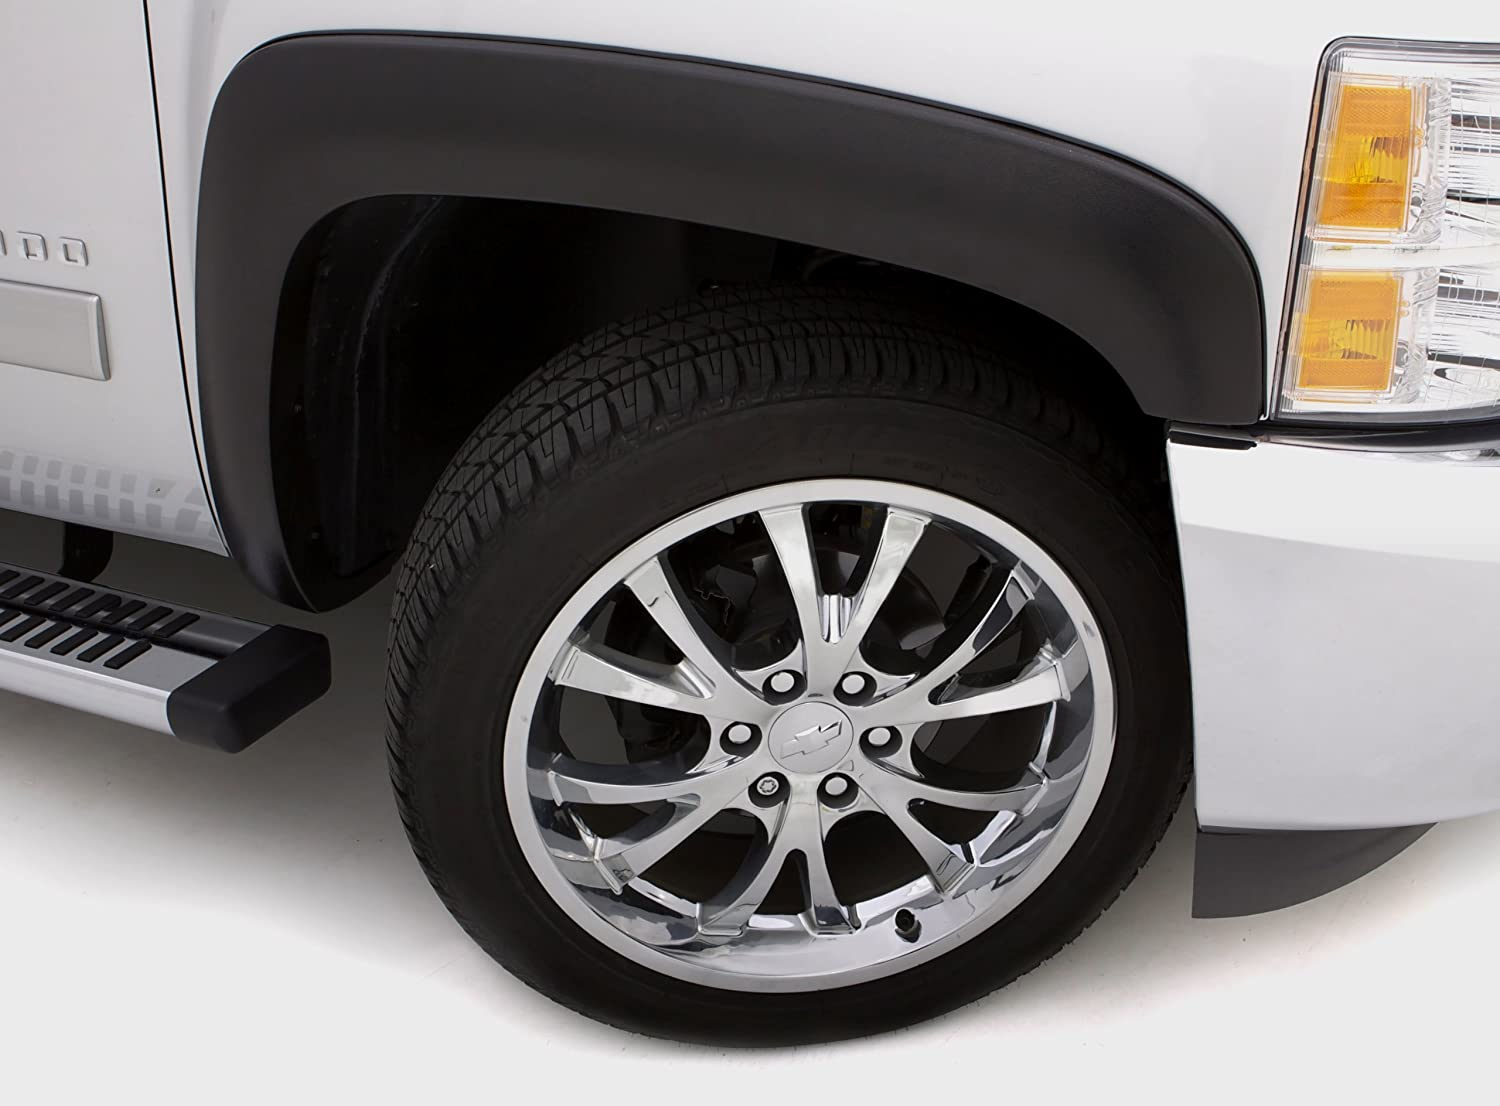 4 Piece Lund SX203S Elite Series Black Sport Style Standard Front and Rear Fender Flare